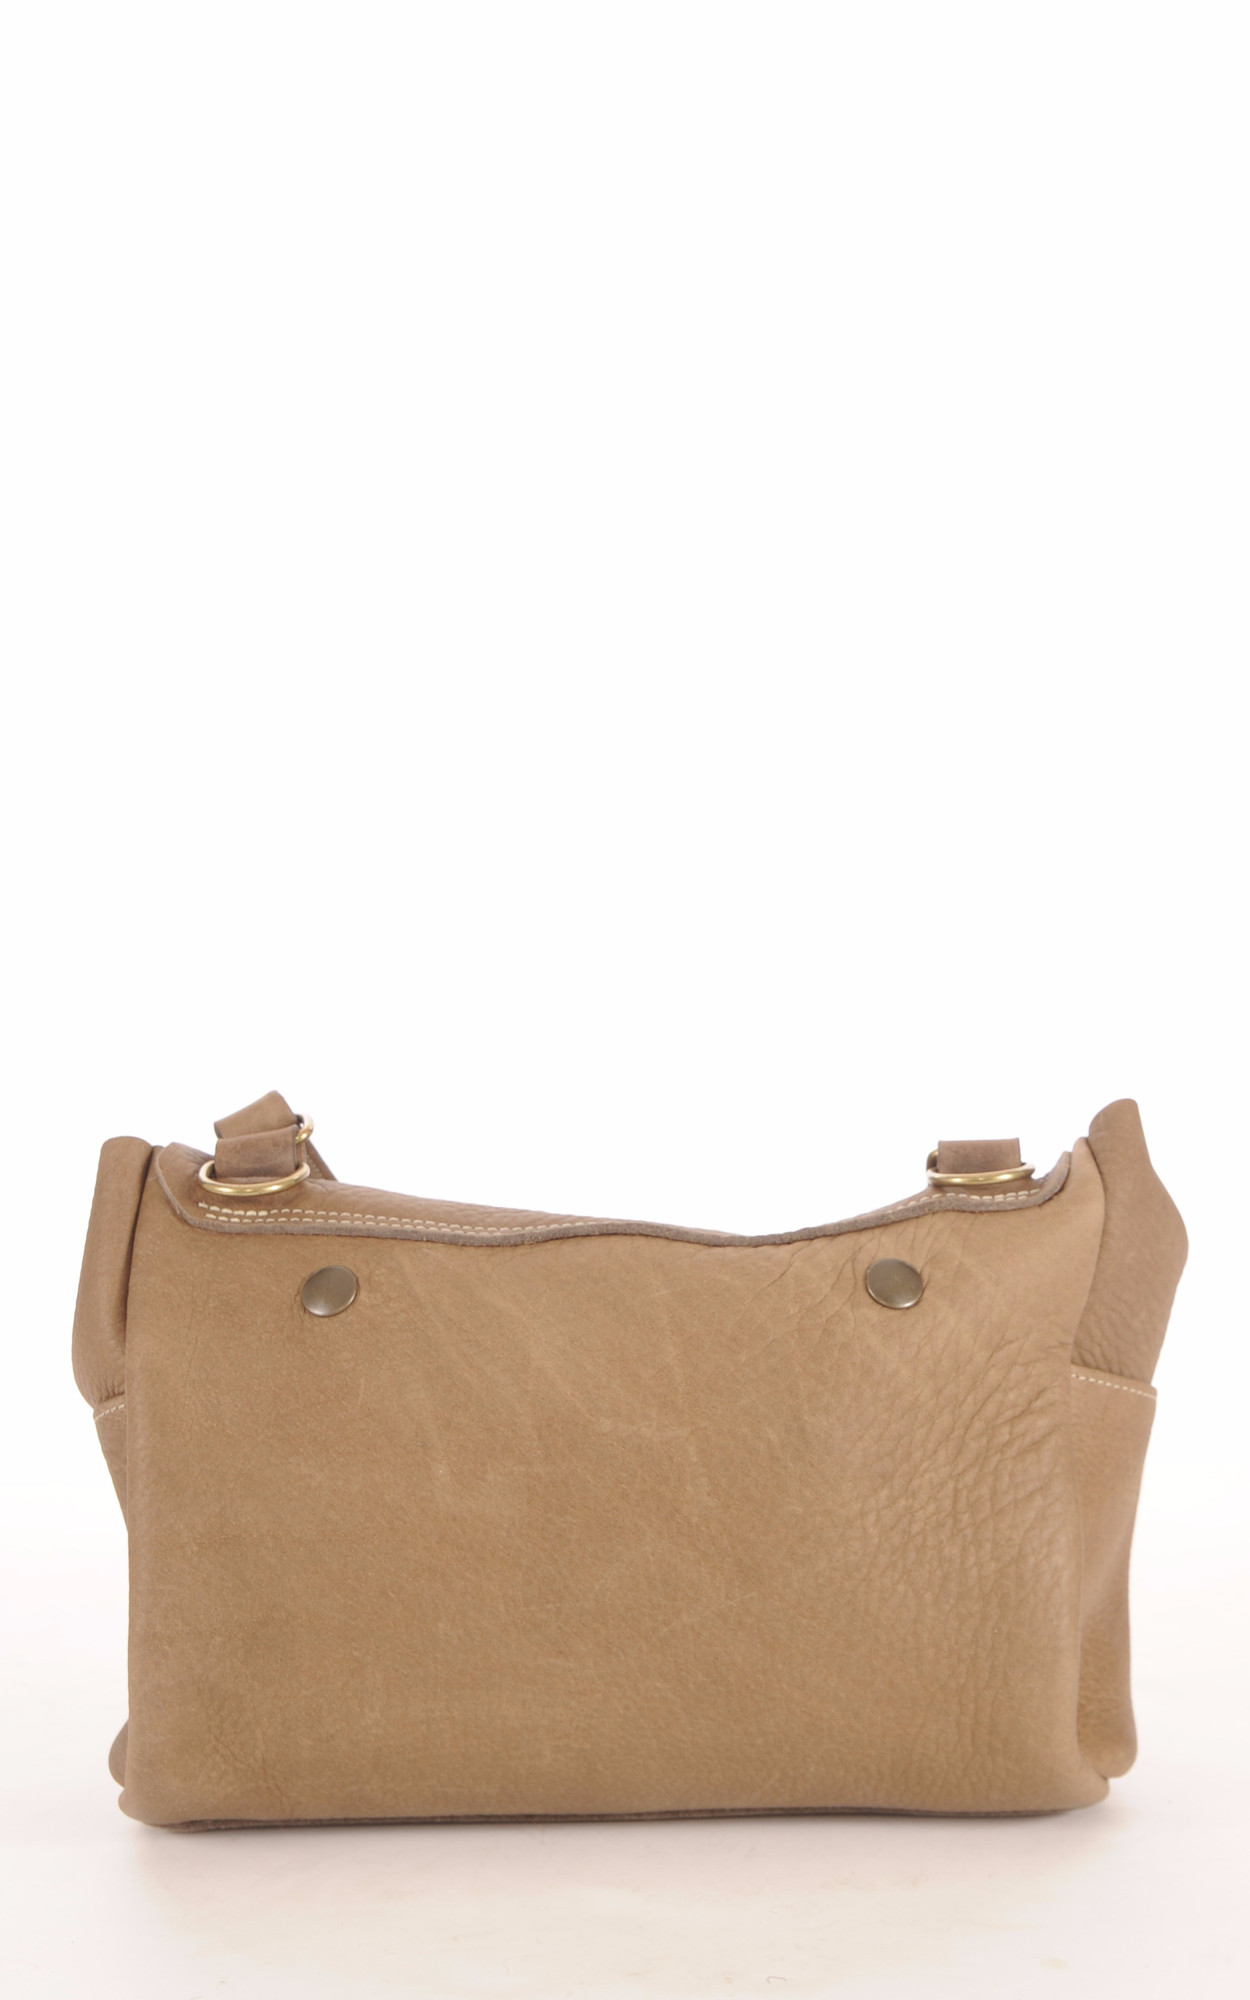 Sac Besace Vachette Taupe